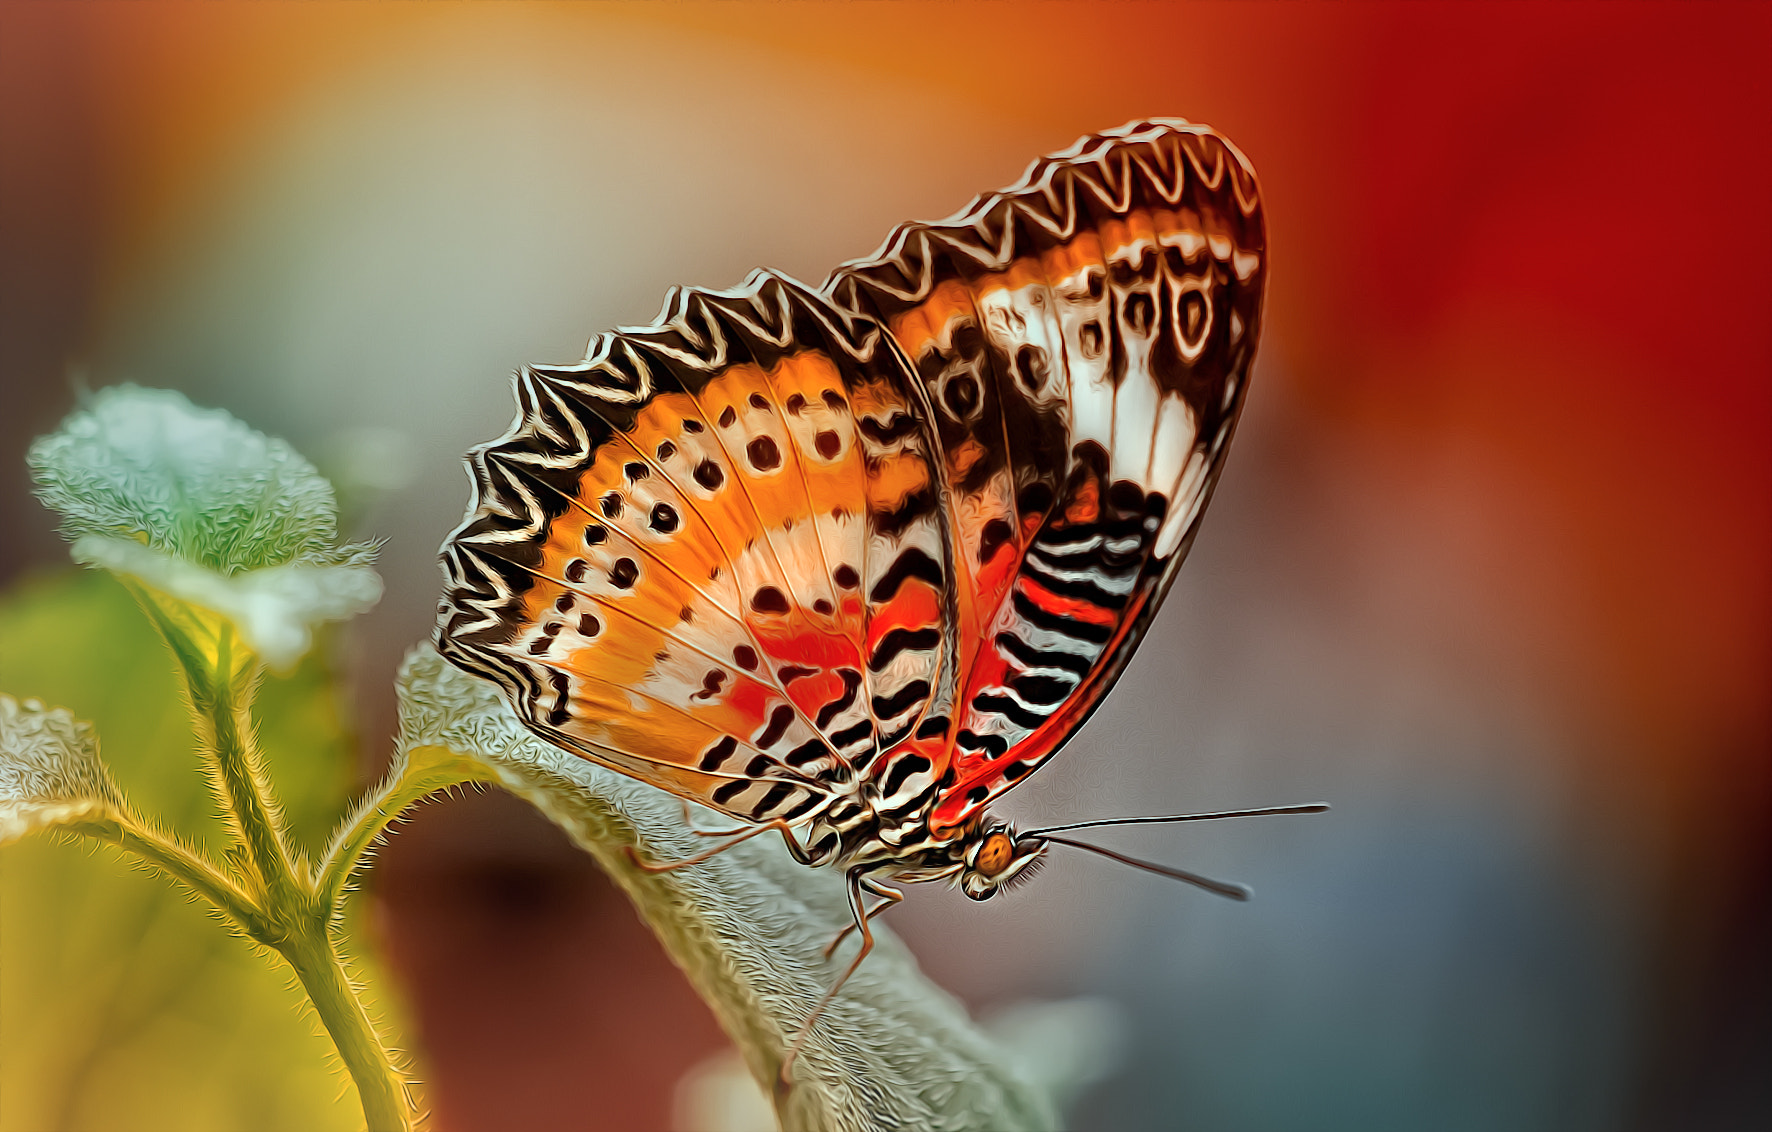 Photograph butterfly by Detlef Knapp on 500px